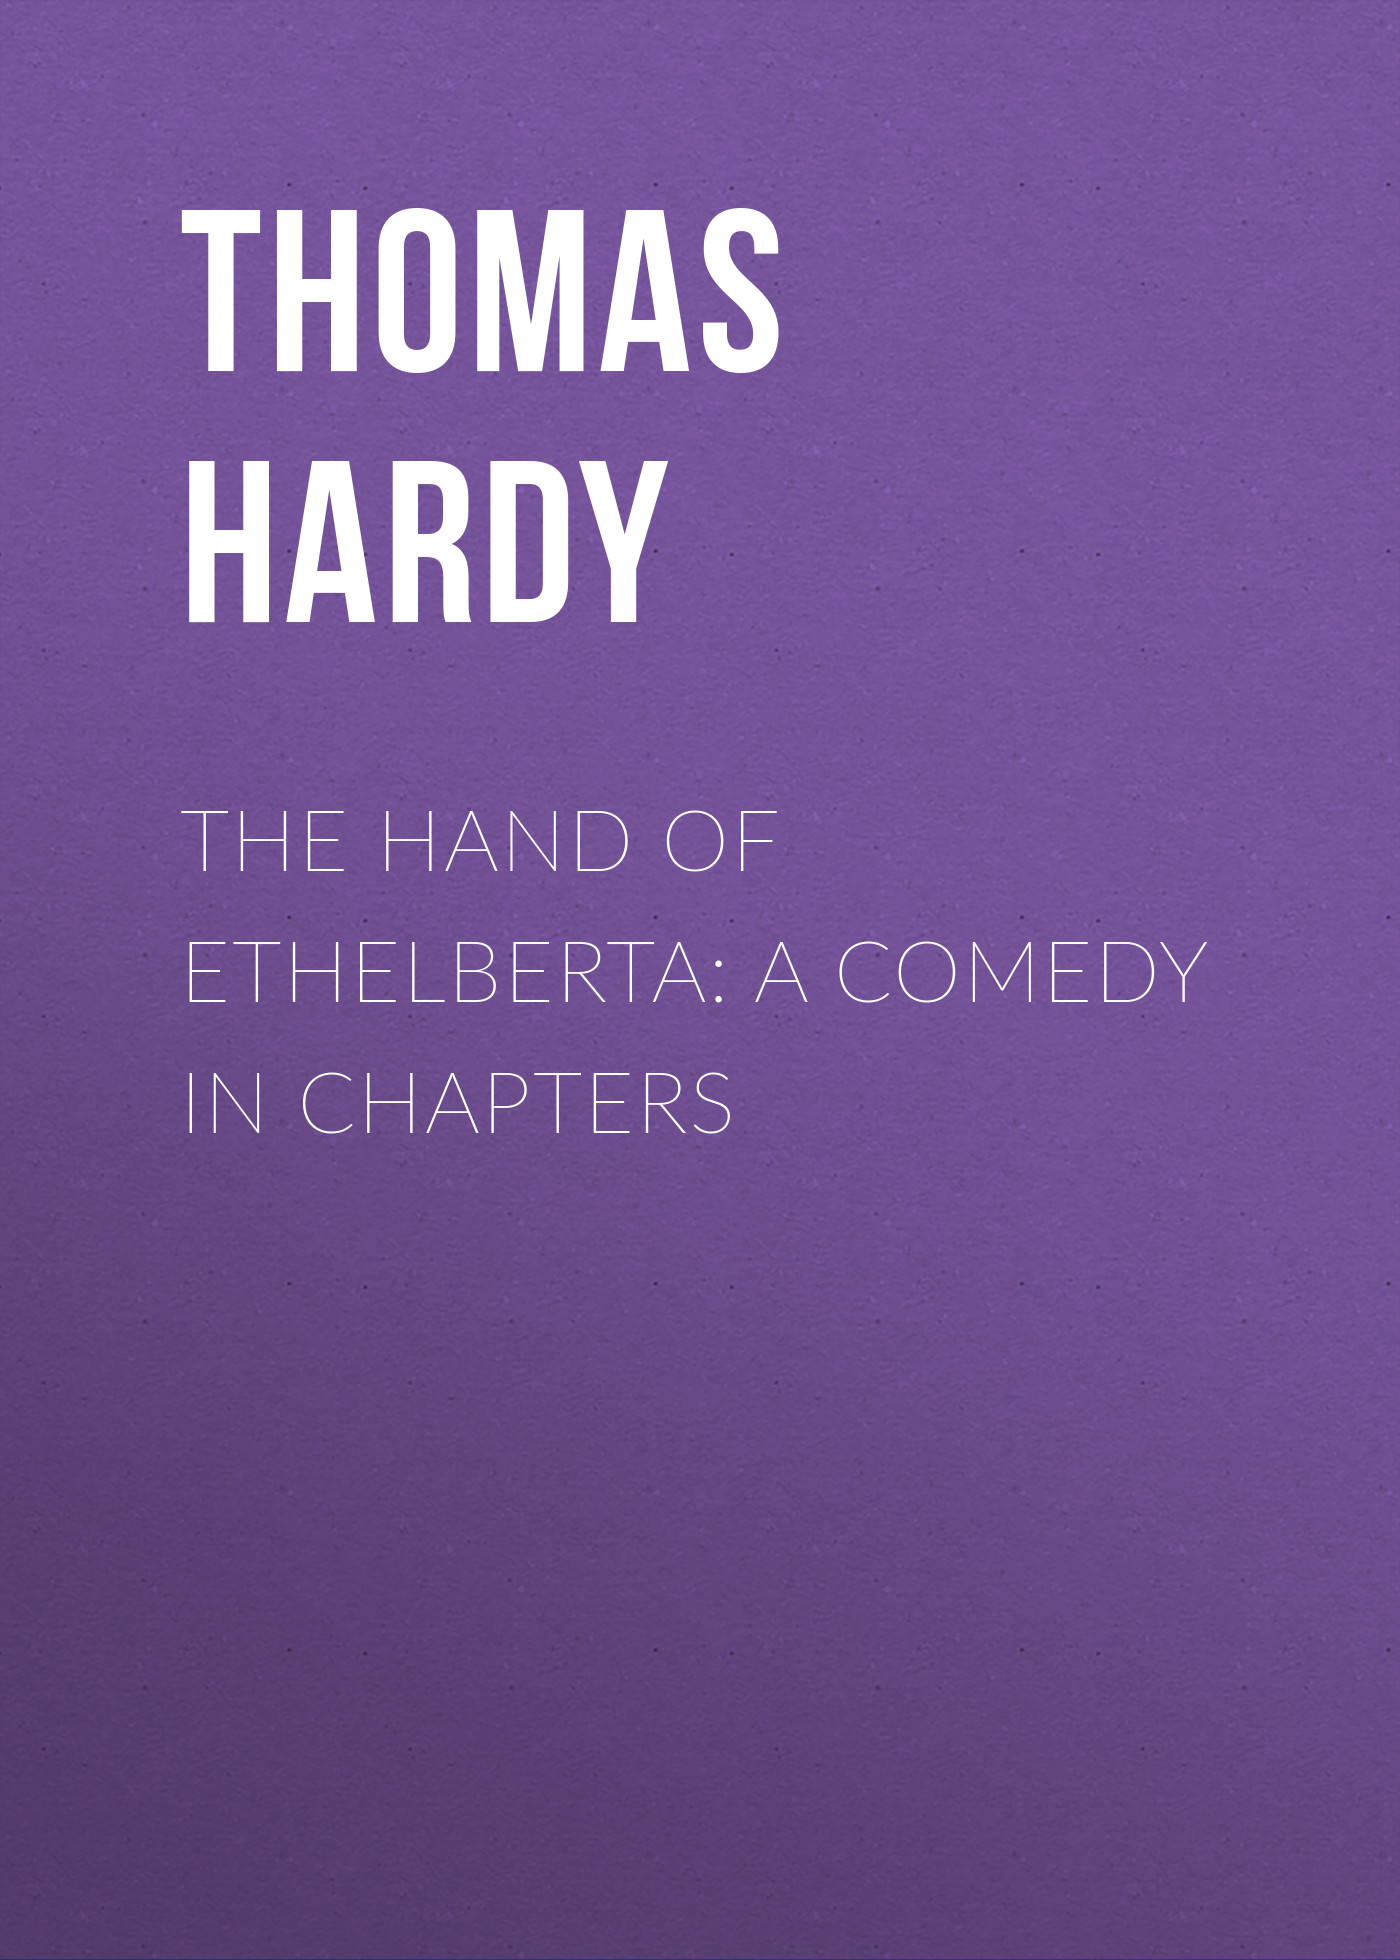 Thomas Hardy The Hand of Ethelberta: A Comedy in Chapters transparent seal retro pipe scrapbook diy photo album chapters rubber product stamp card hand account